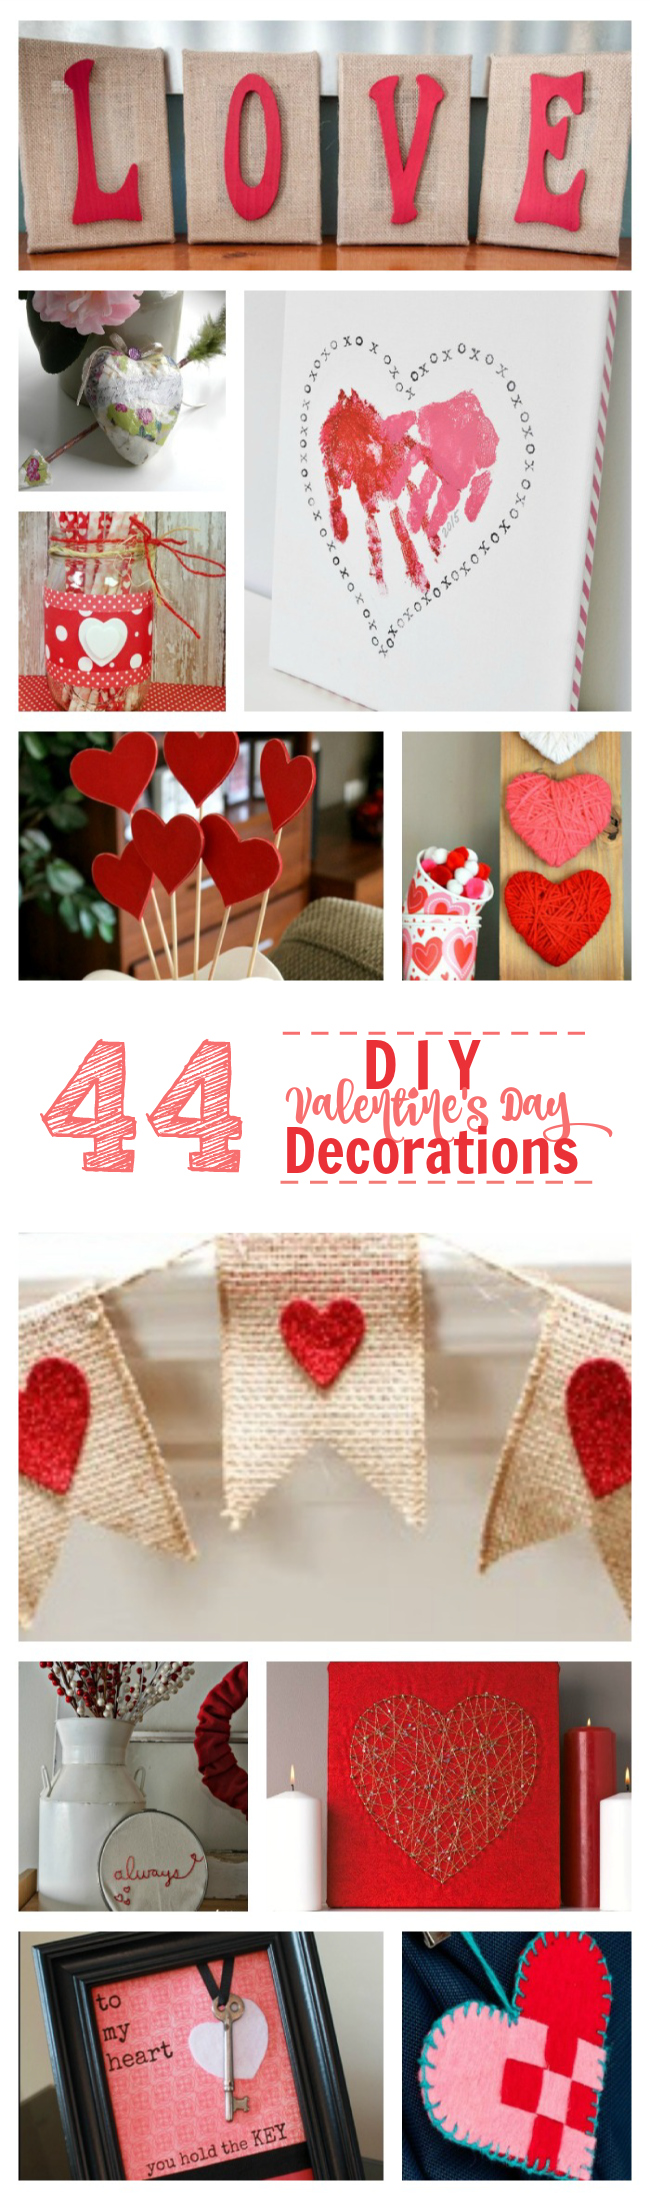 100 diy valentines decorations 14 days of valentines day 2